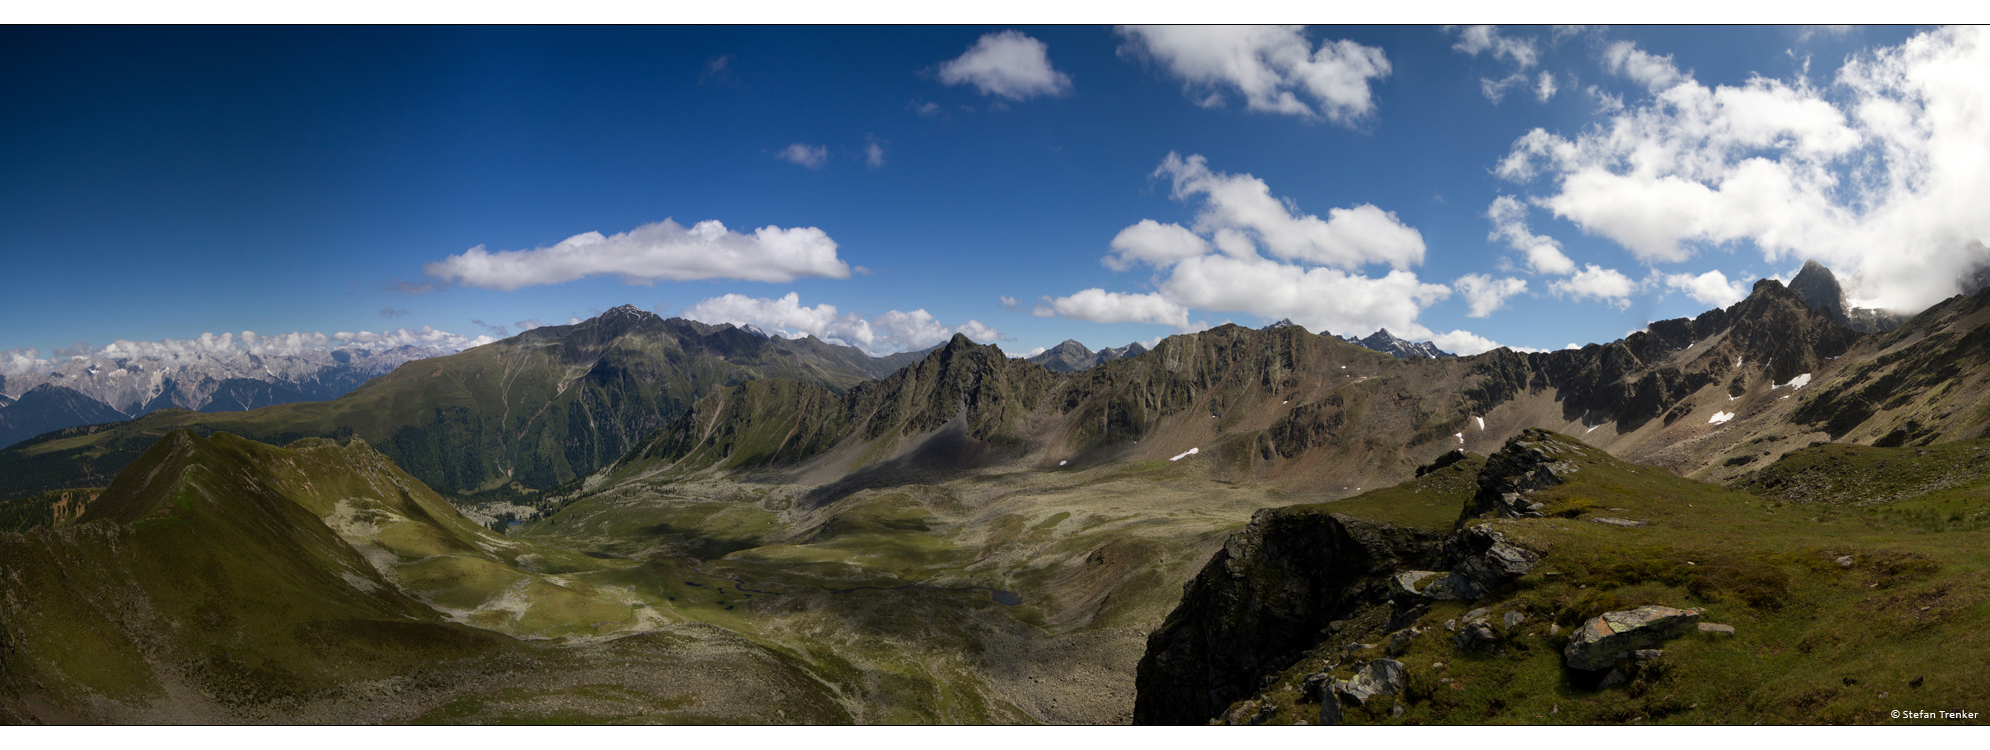 panorama, pano, Austria, Tyrol, mountains, landscape